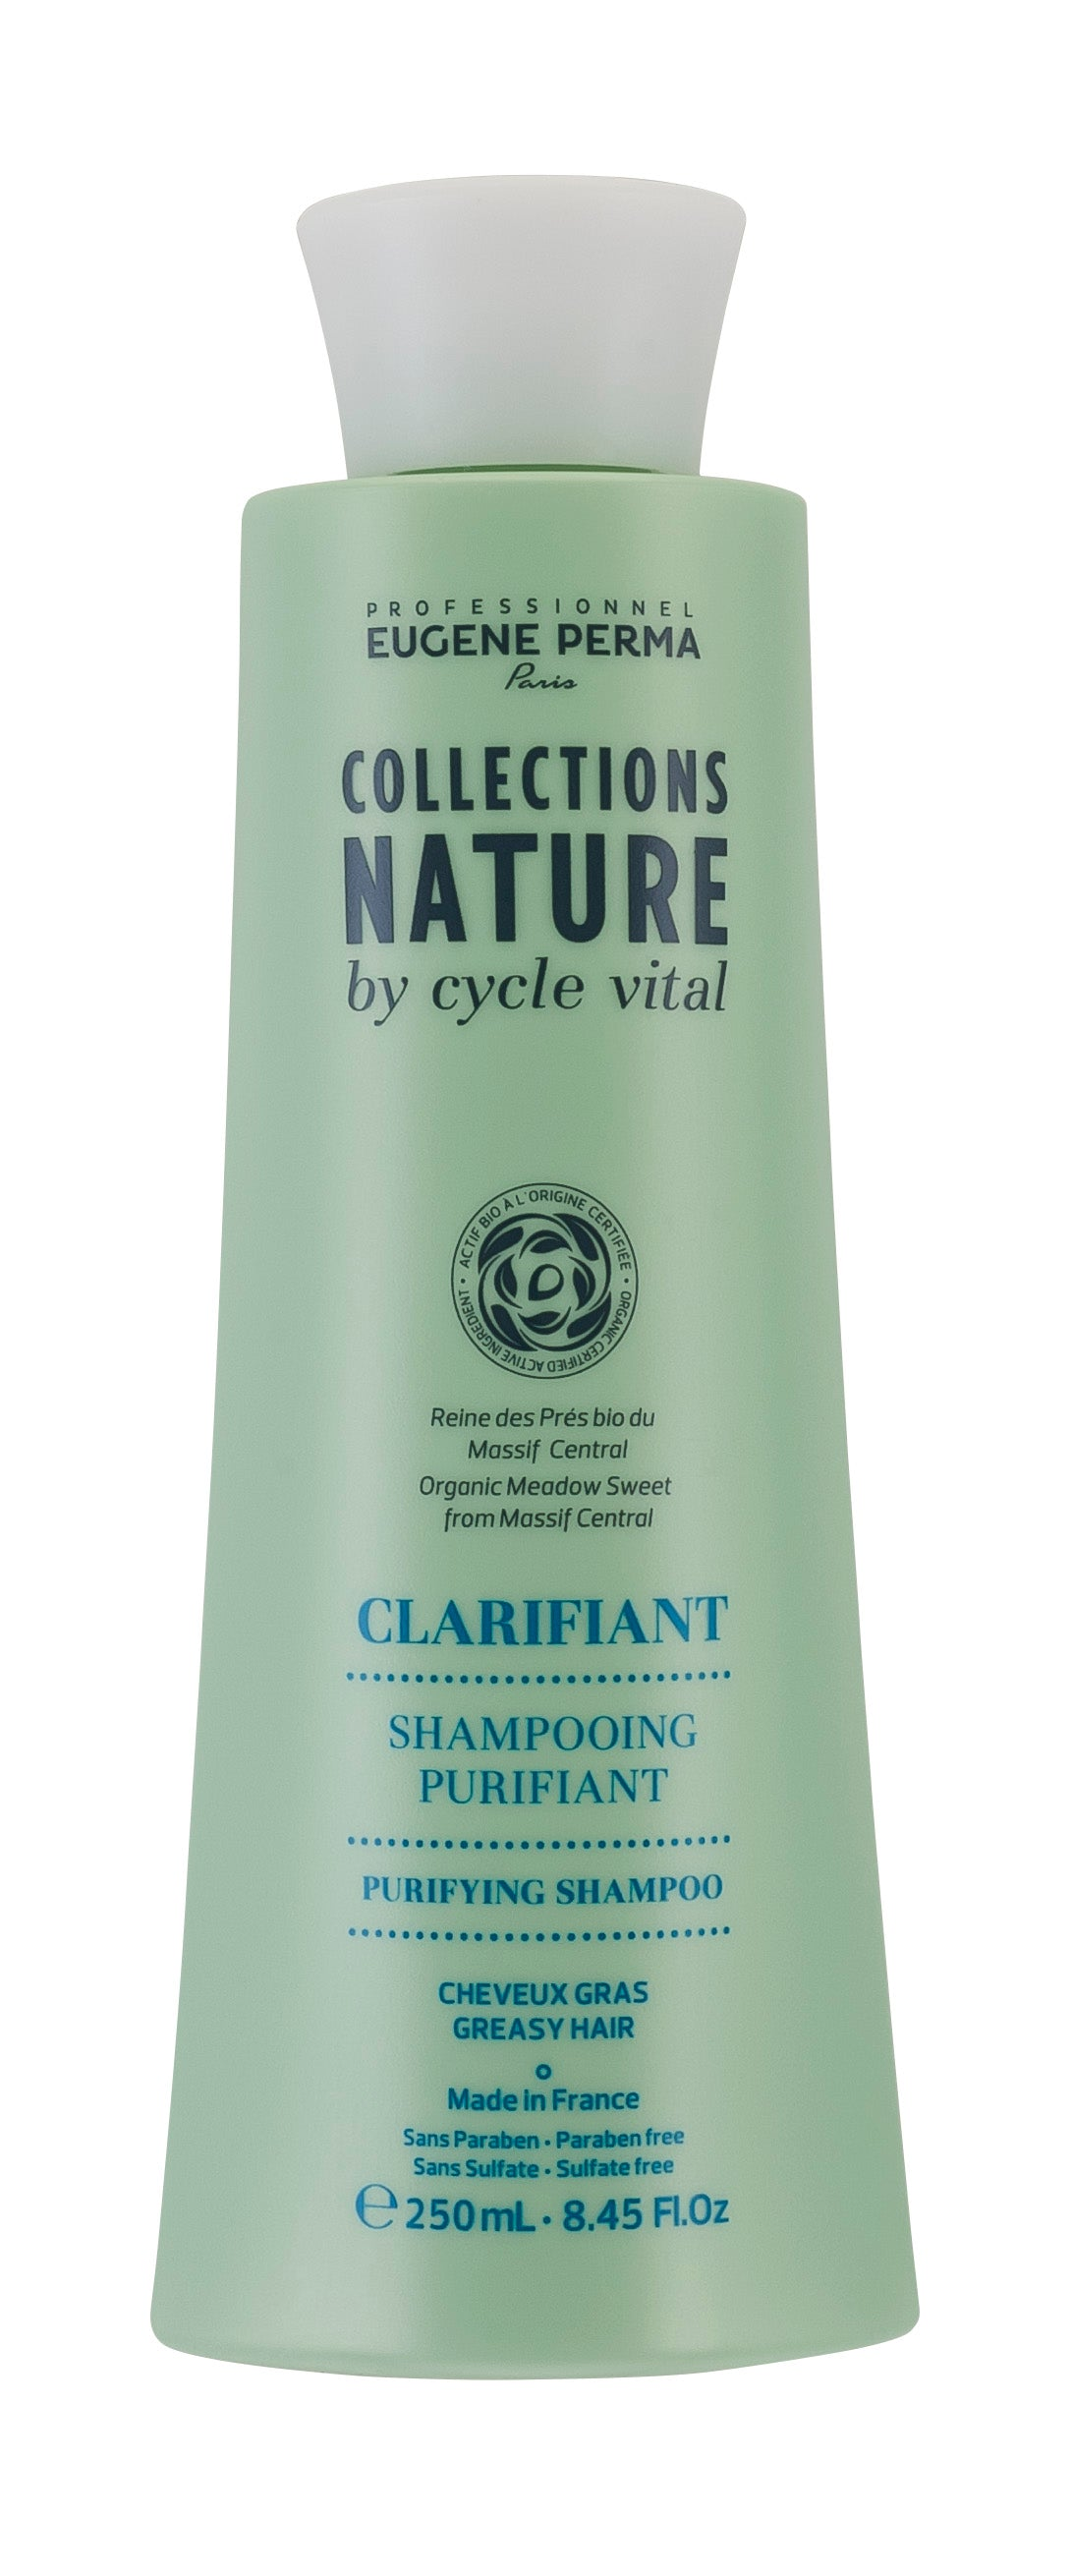 COLLECTION NATURE Shampoing Purifiant 250 ML | Eugène Perma Professionnel